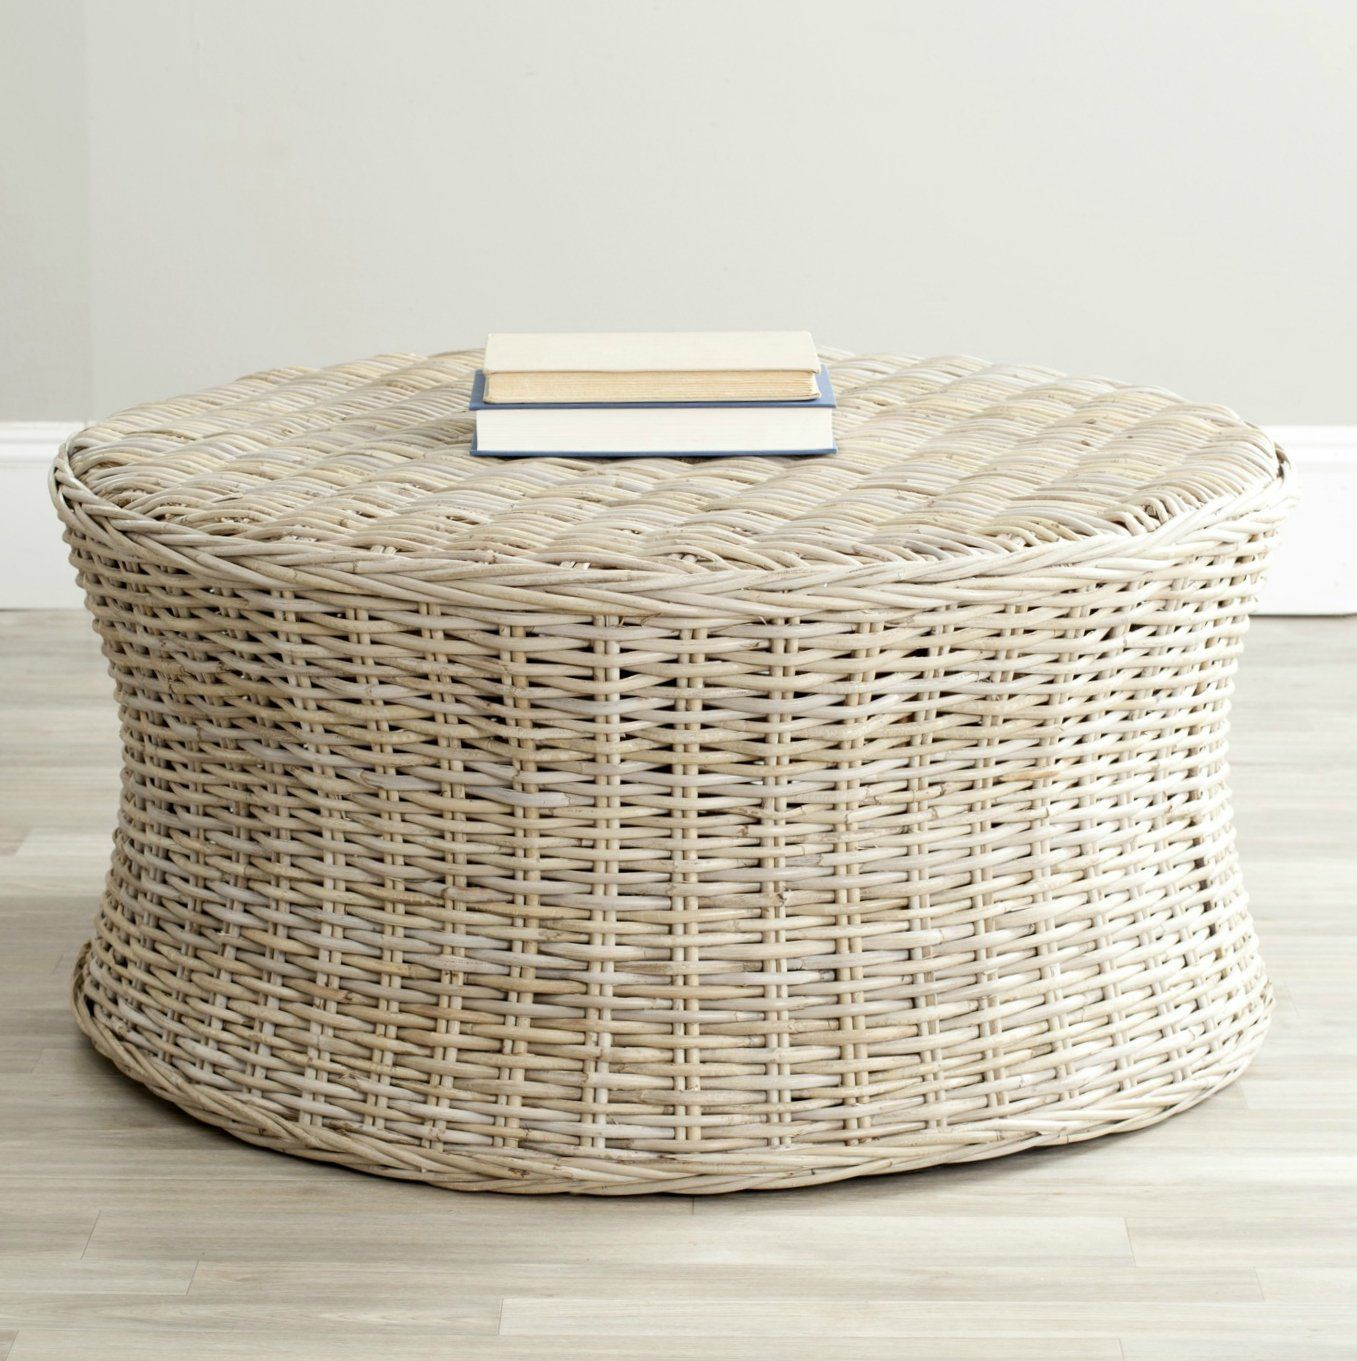 Woven Natural Rattan Palm Sturdy Wicker Round Coffee Table You Can Get Additional Details At The Image Link This Is Ottoman Cocktail Ottoman Coffee Table [ 1361 x 1357 Pixel ]